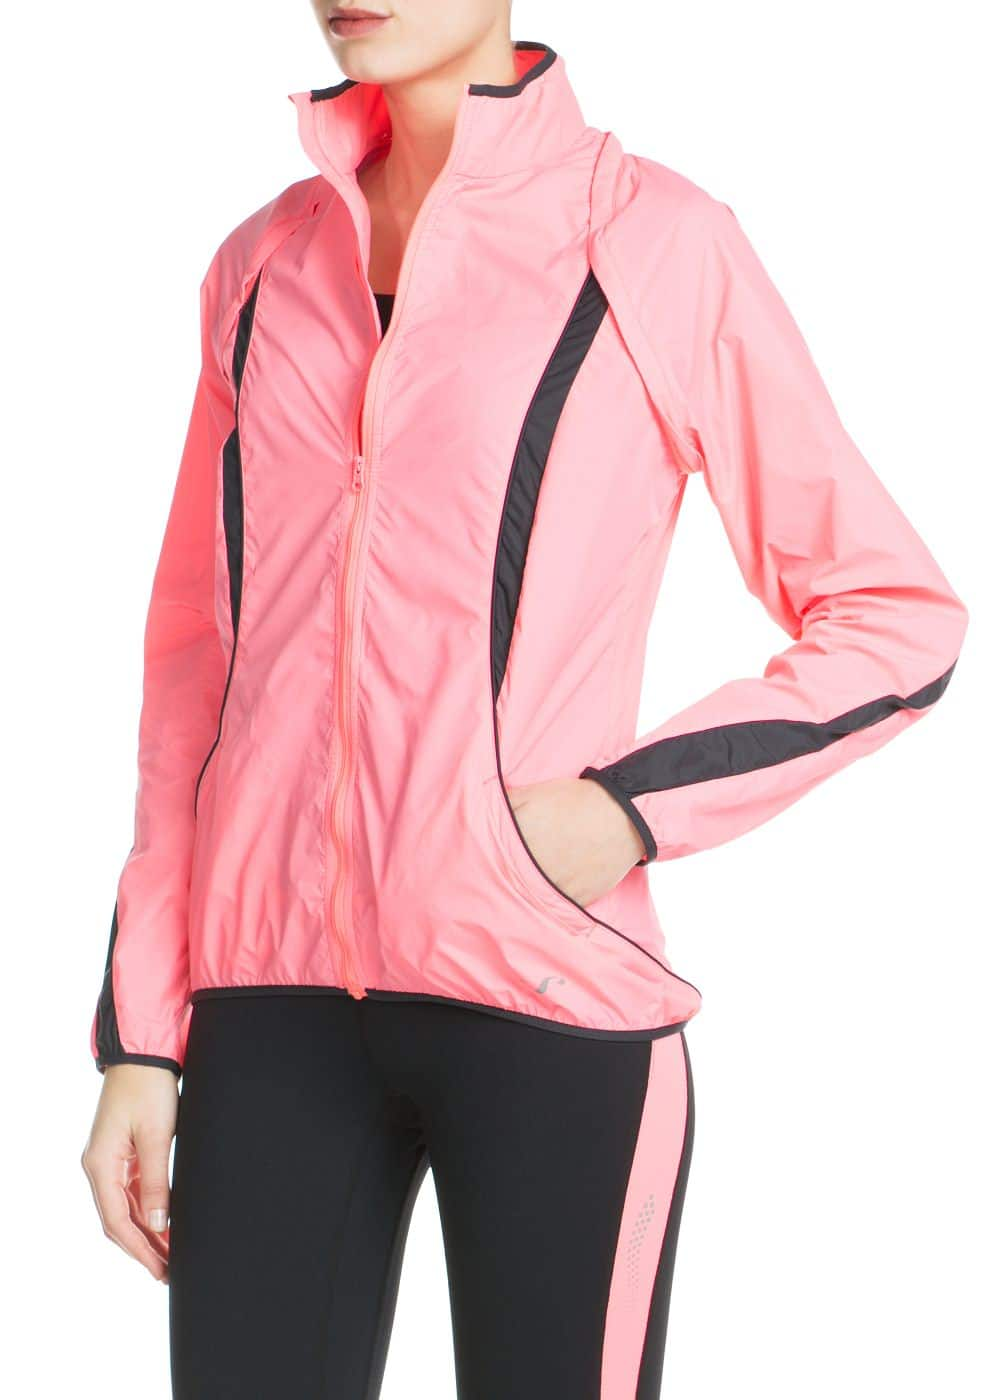 Fitness & Running - Ultraleichte Outdoor-Windjacke